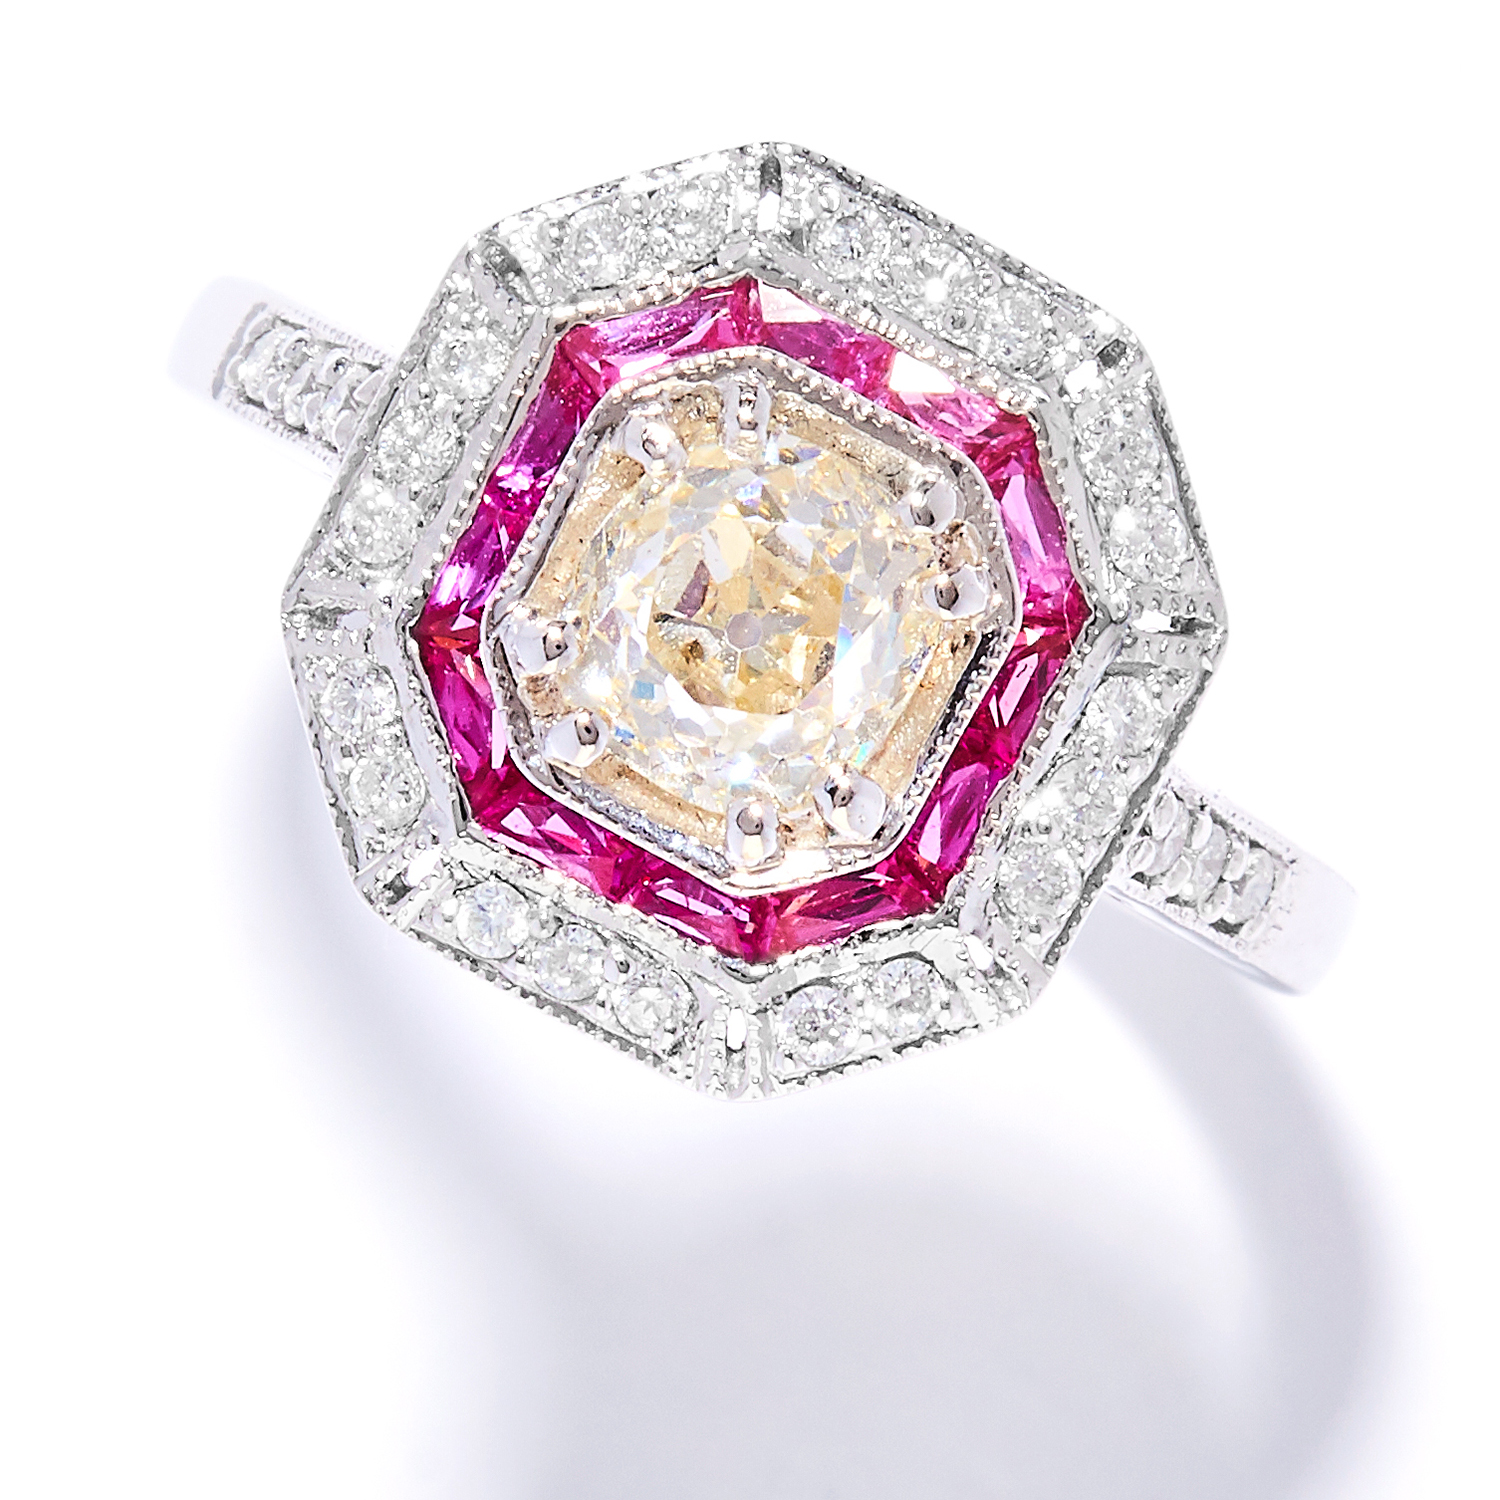 Los 44 - DIAMOND AND RUBY DRESS RING in 18ct white gold, in Art Deco design, set with an old cut diamond of